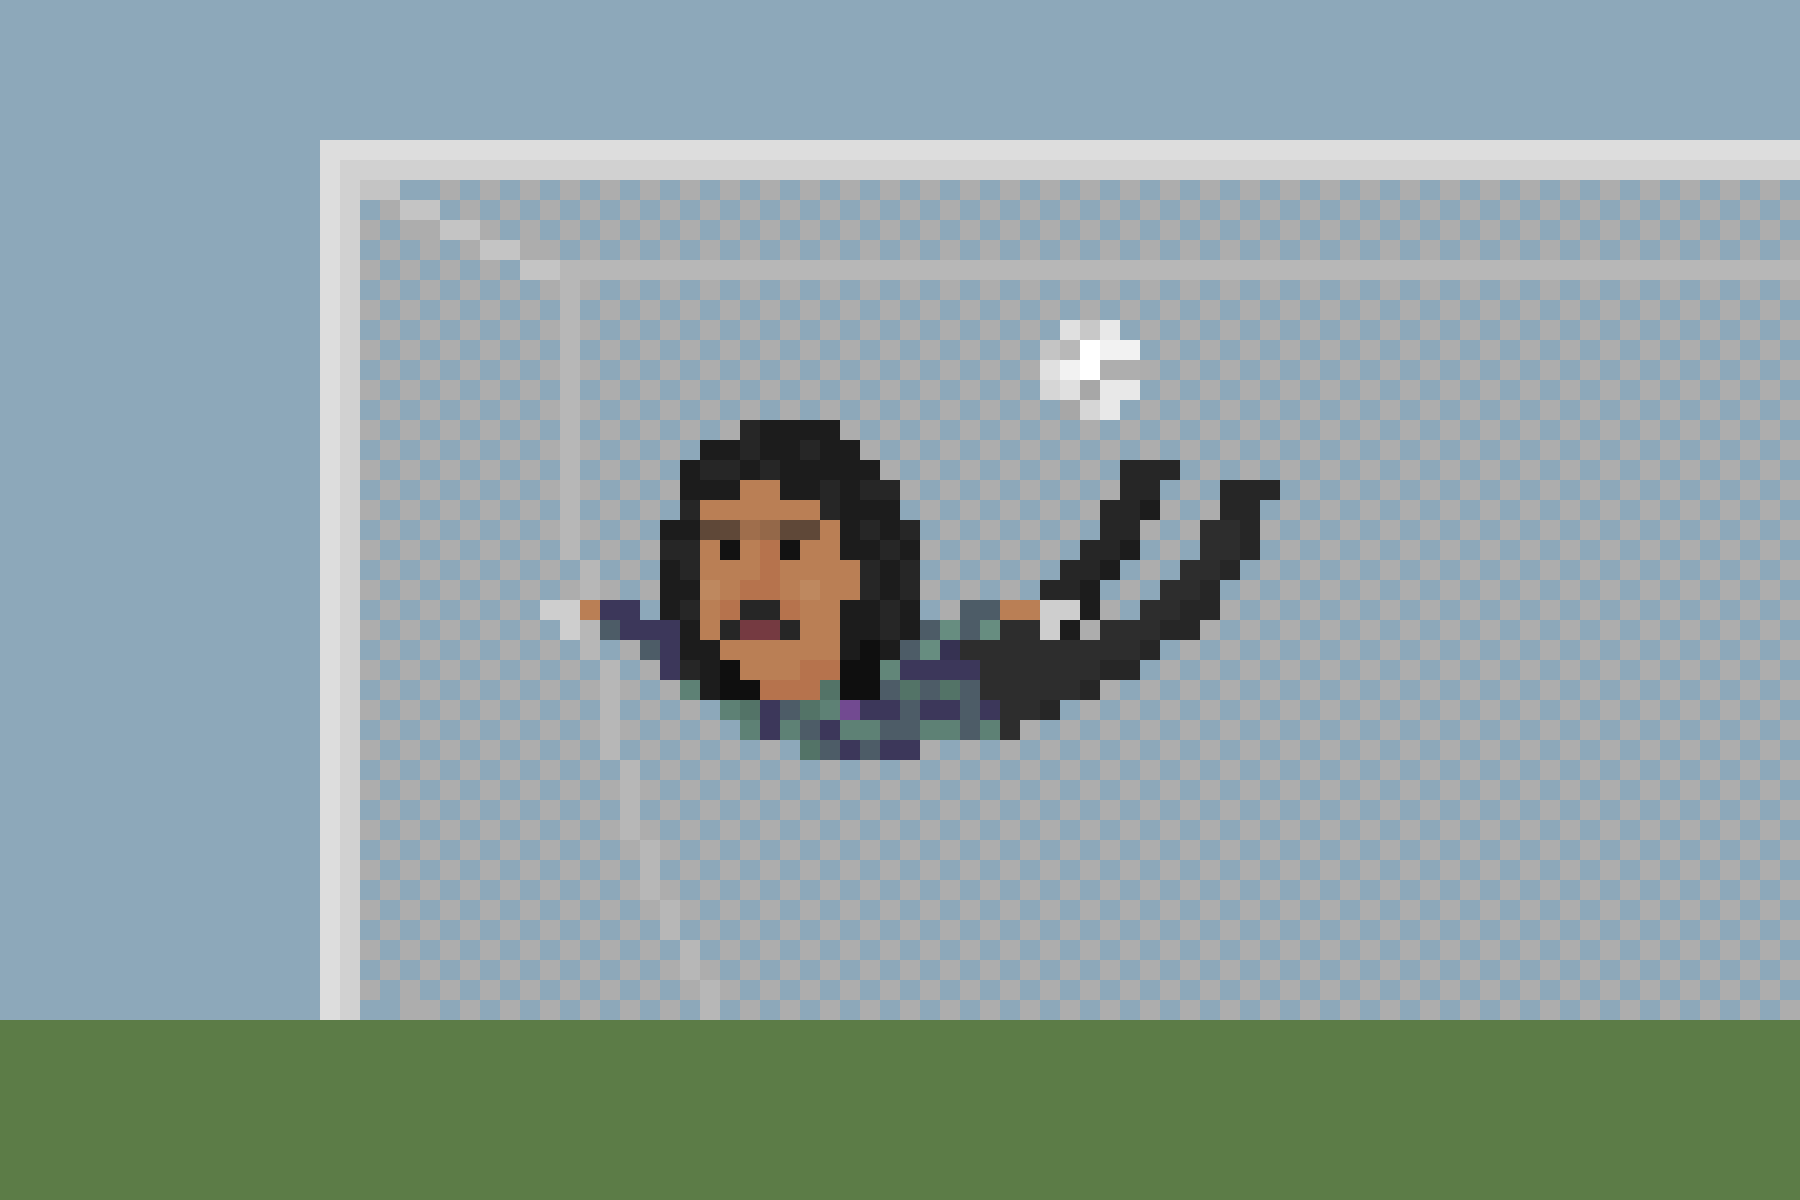 Higuita's scorpion kick save